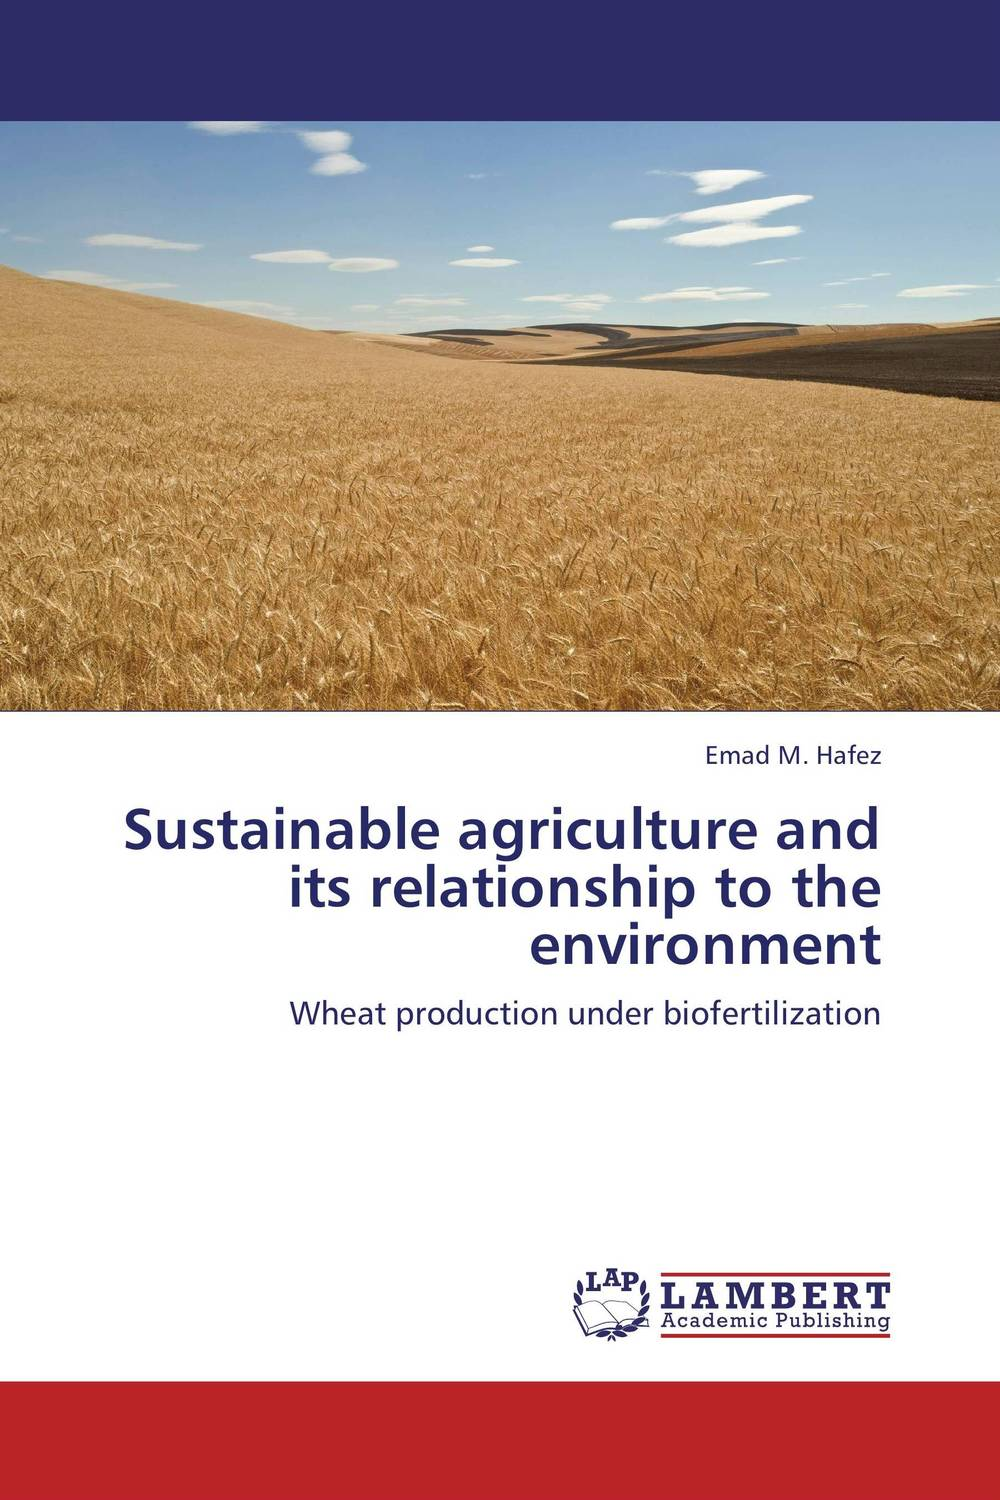 Sustainable agriculture and its relationship to the environment purnima sareen sundeep kumar and rakesh singh molecular and pathological characterization of slow rusting in wheat